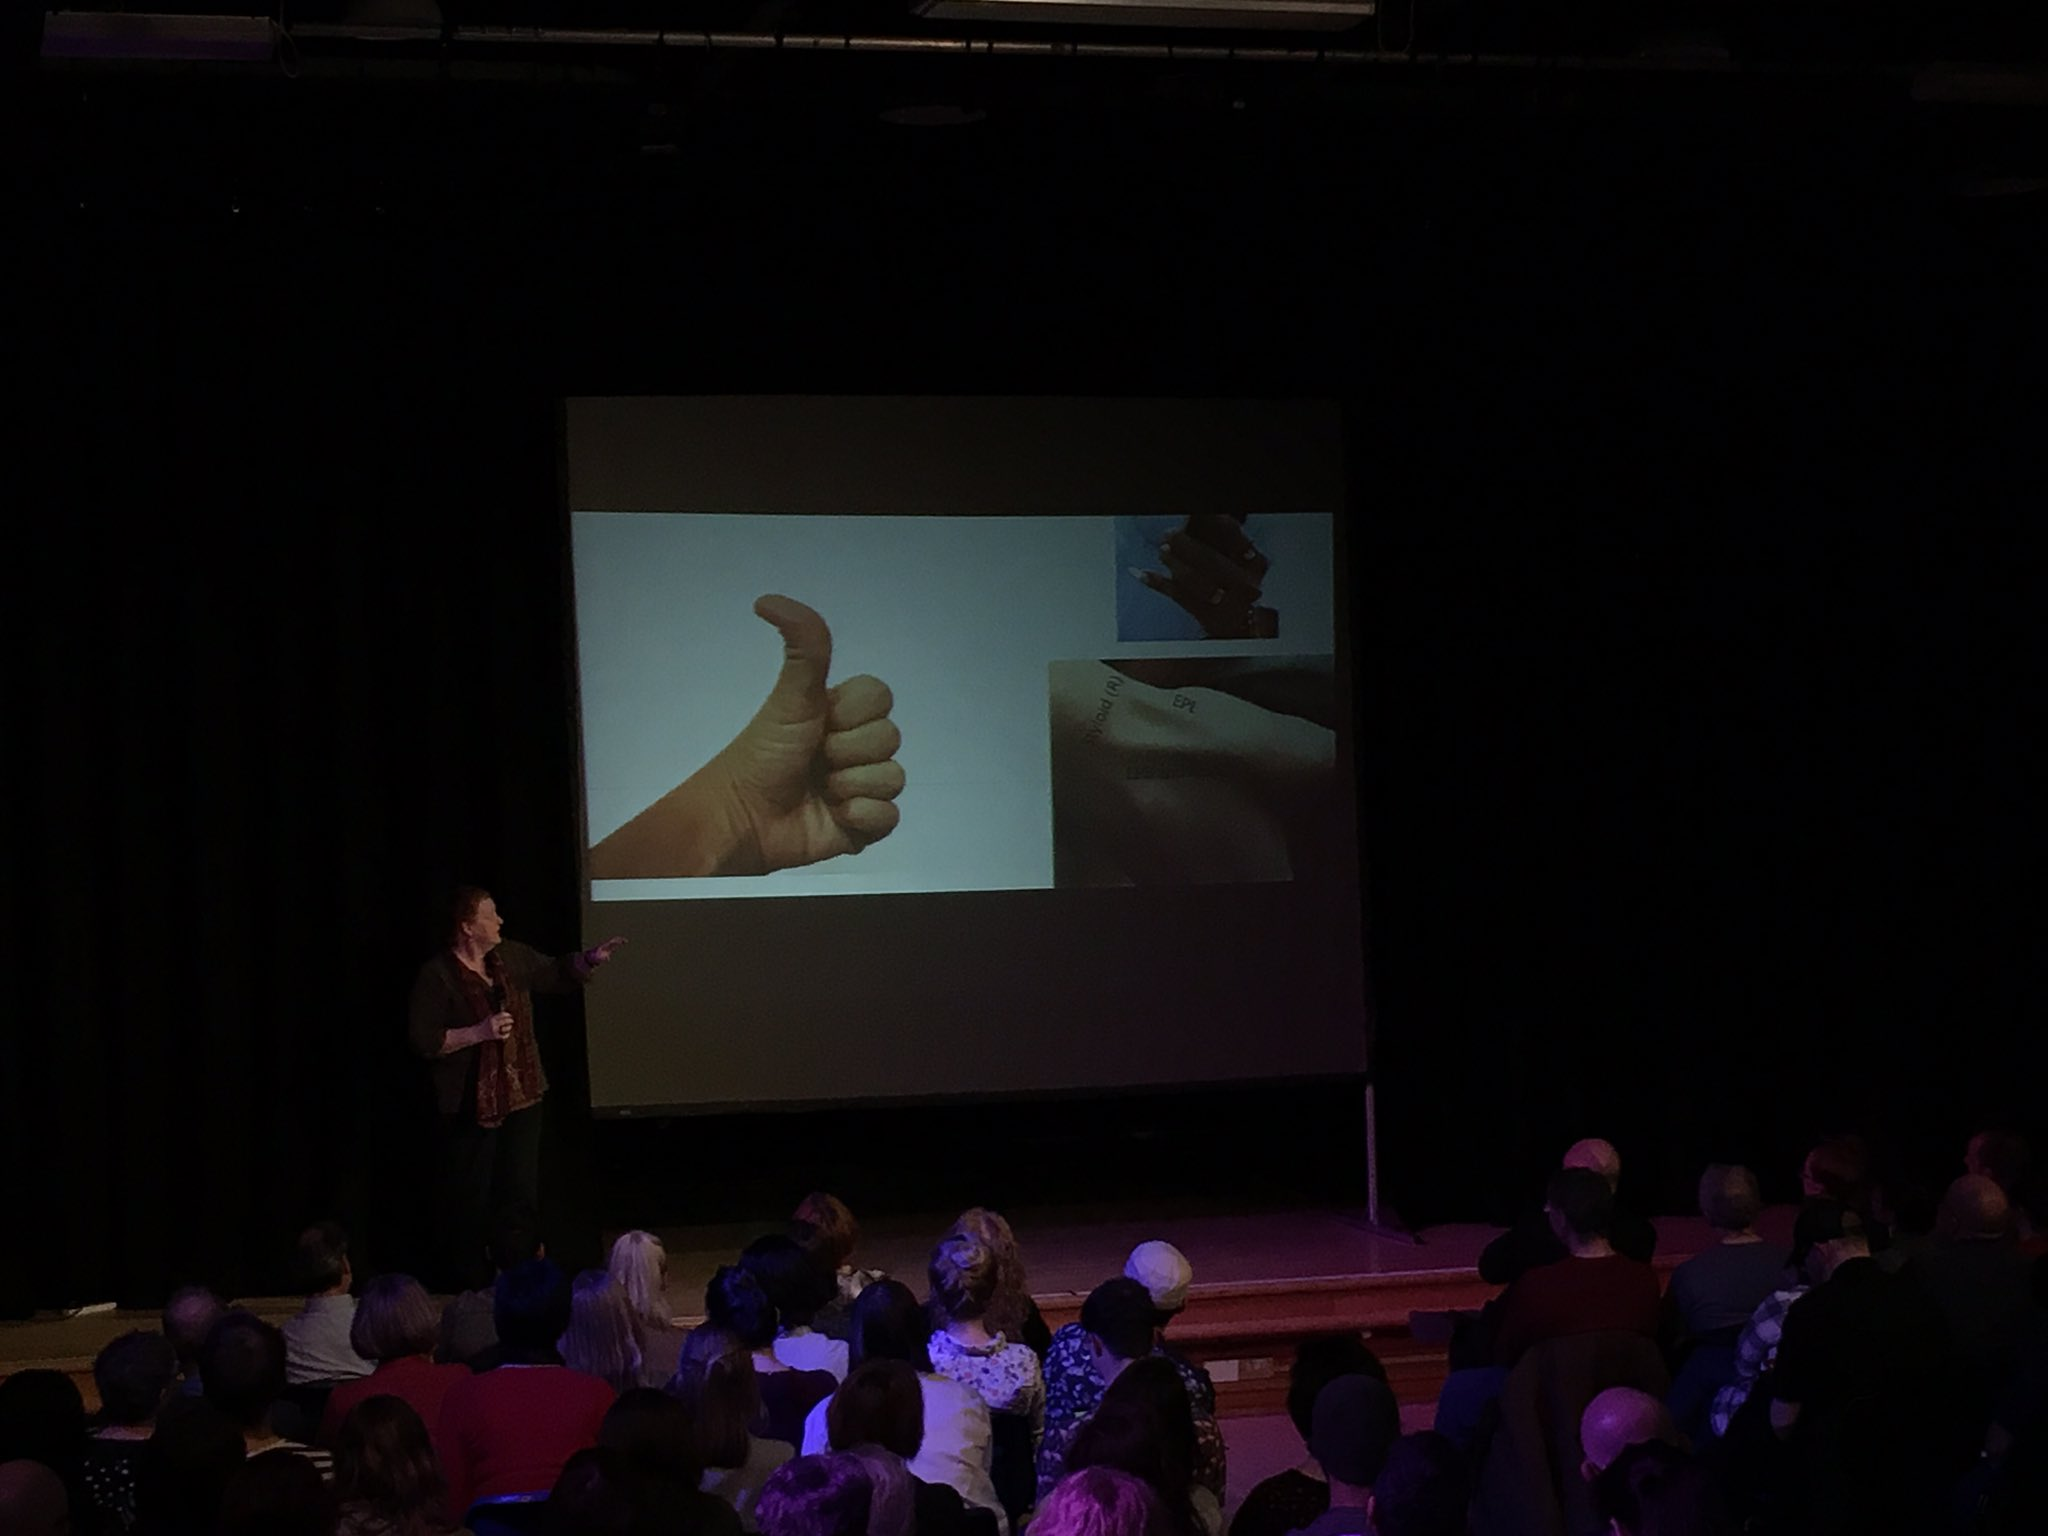 So many uses, communication, touch, identification... #hands part of our identity #pkn_dnd fascinating hearing from Professor Sue Black https://t.co/z0QqauLcZz